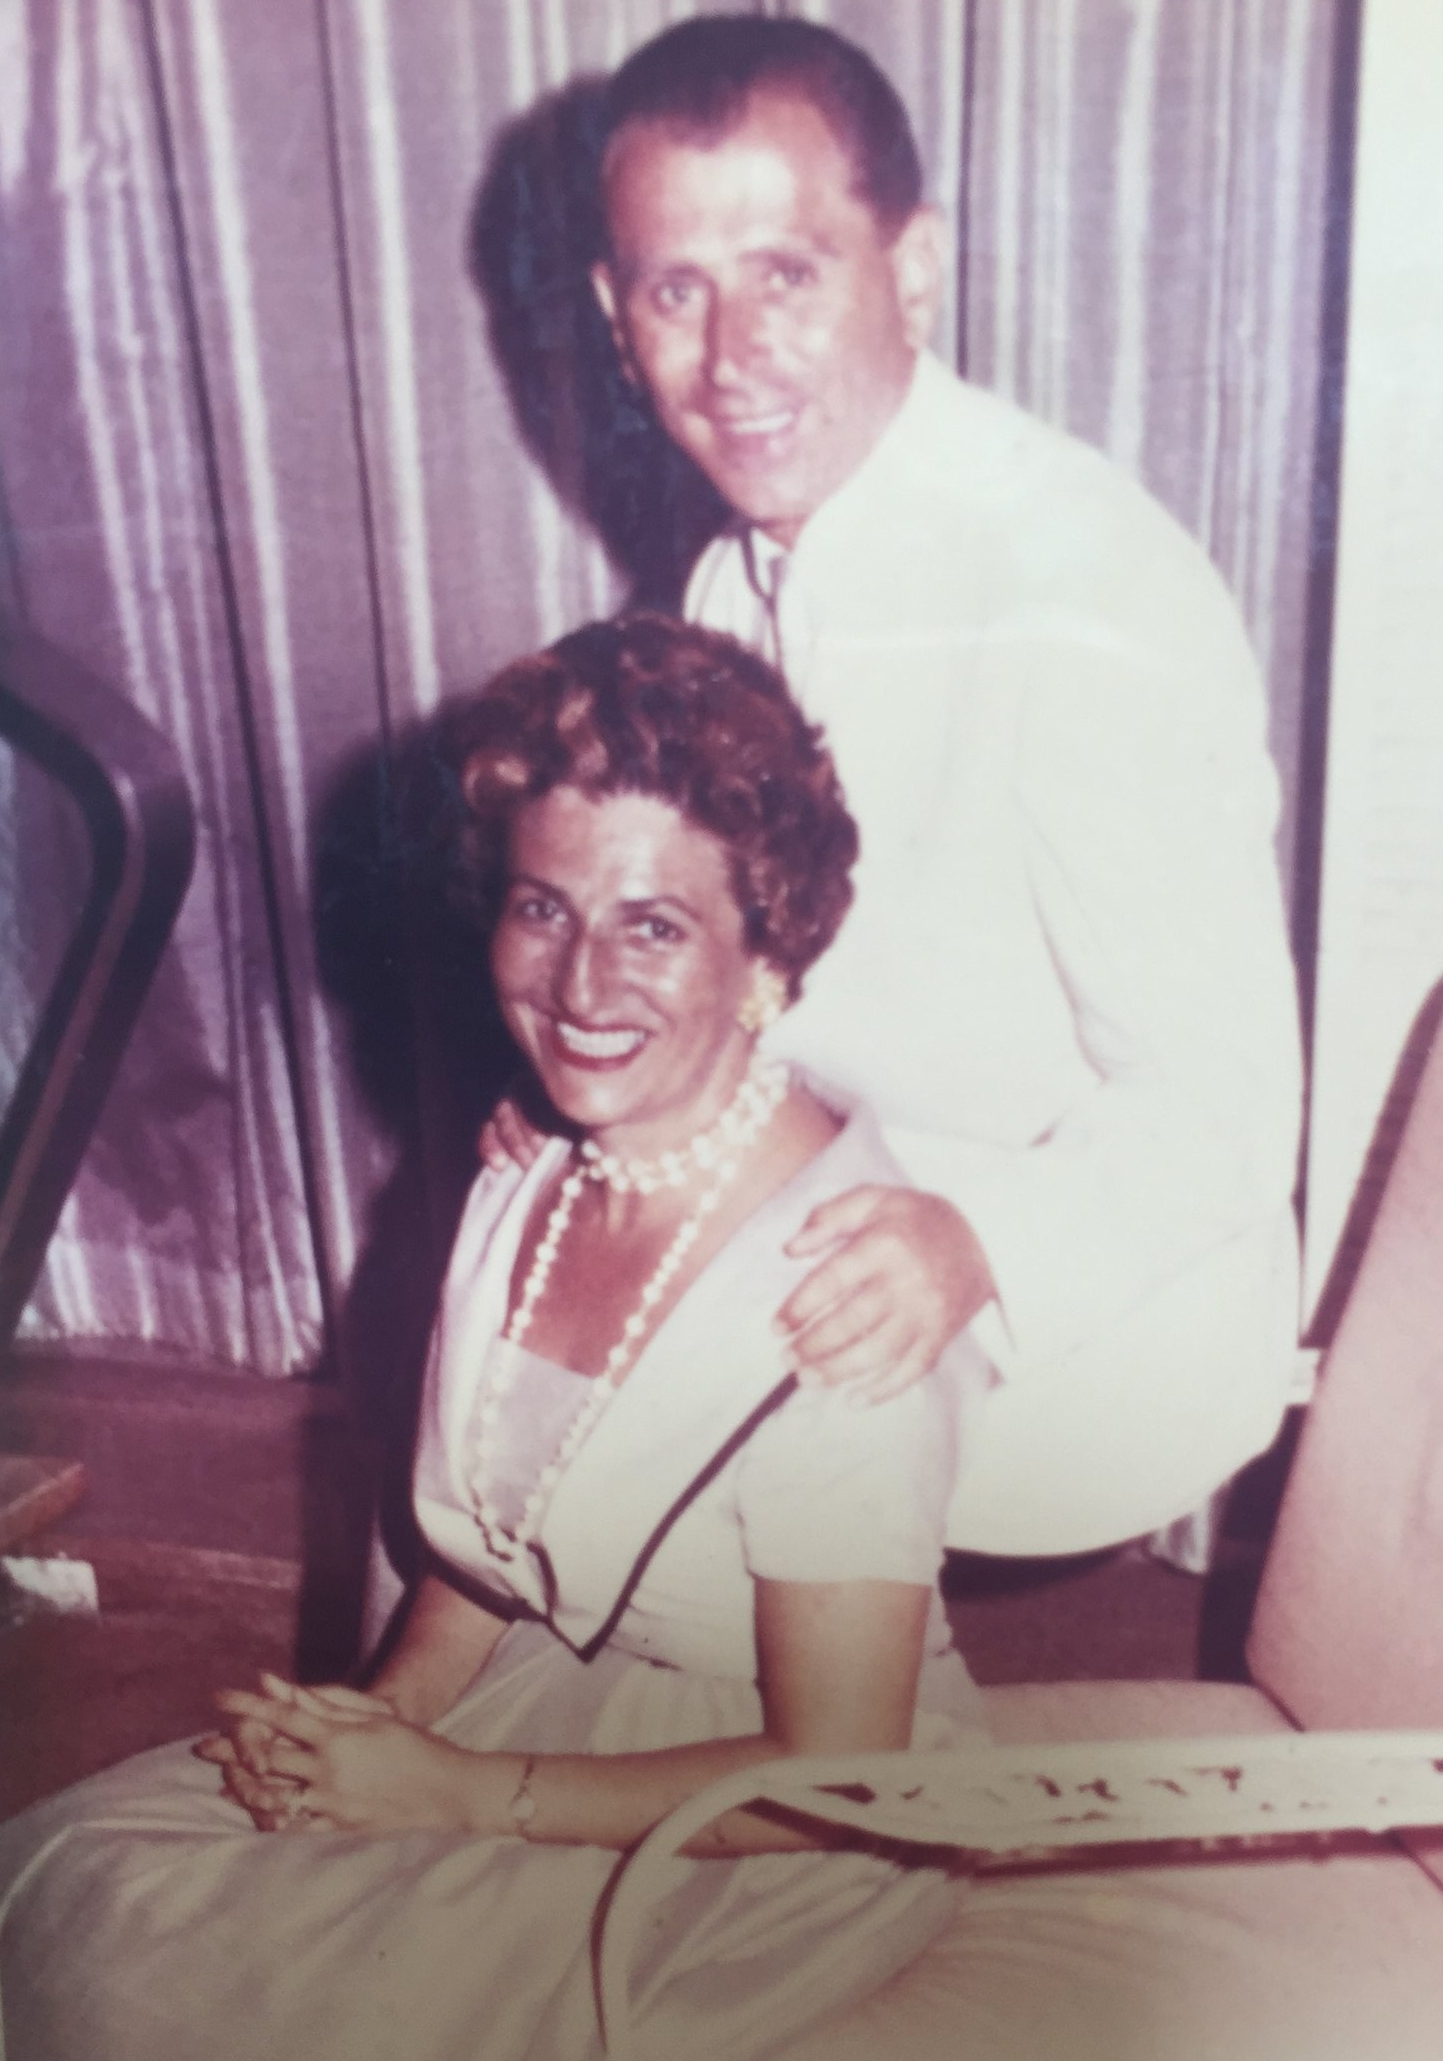 Jadzia and Ben Stern, late-1950s. Image courtesy of Lilly Stern Filler.